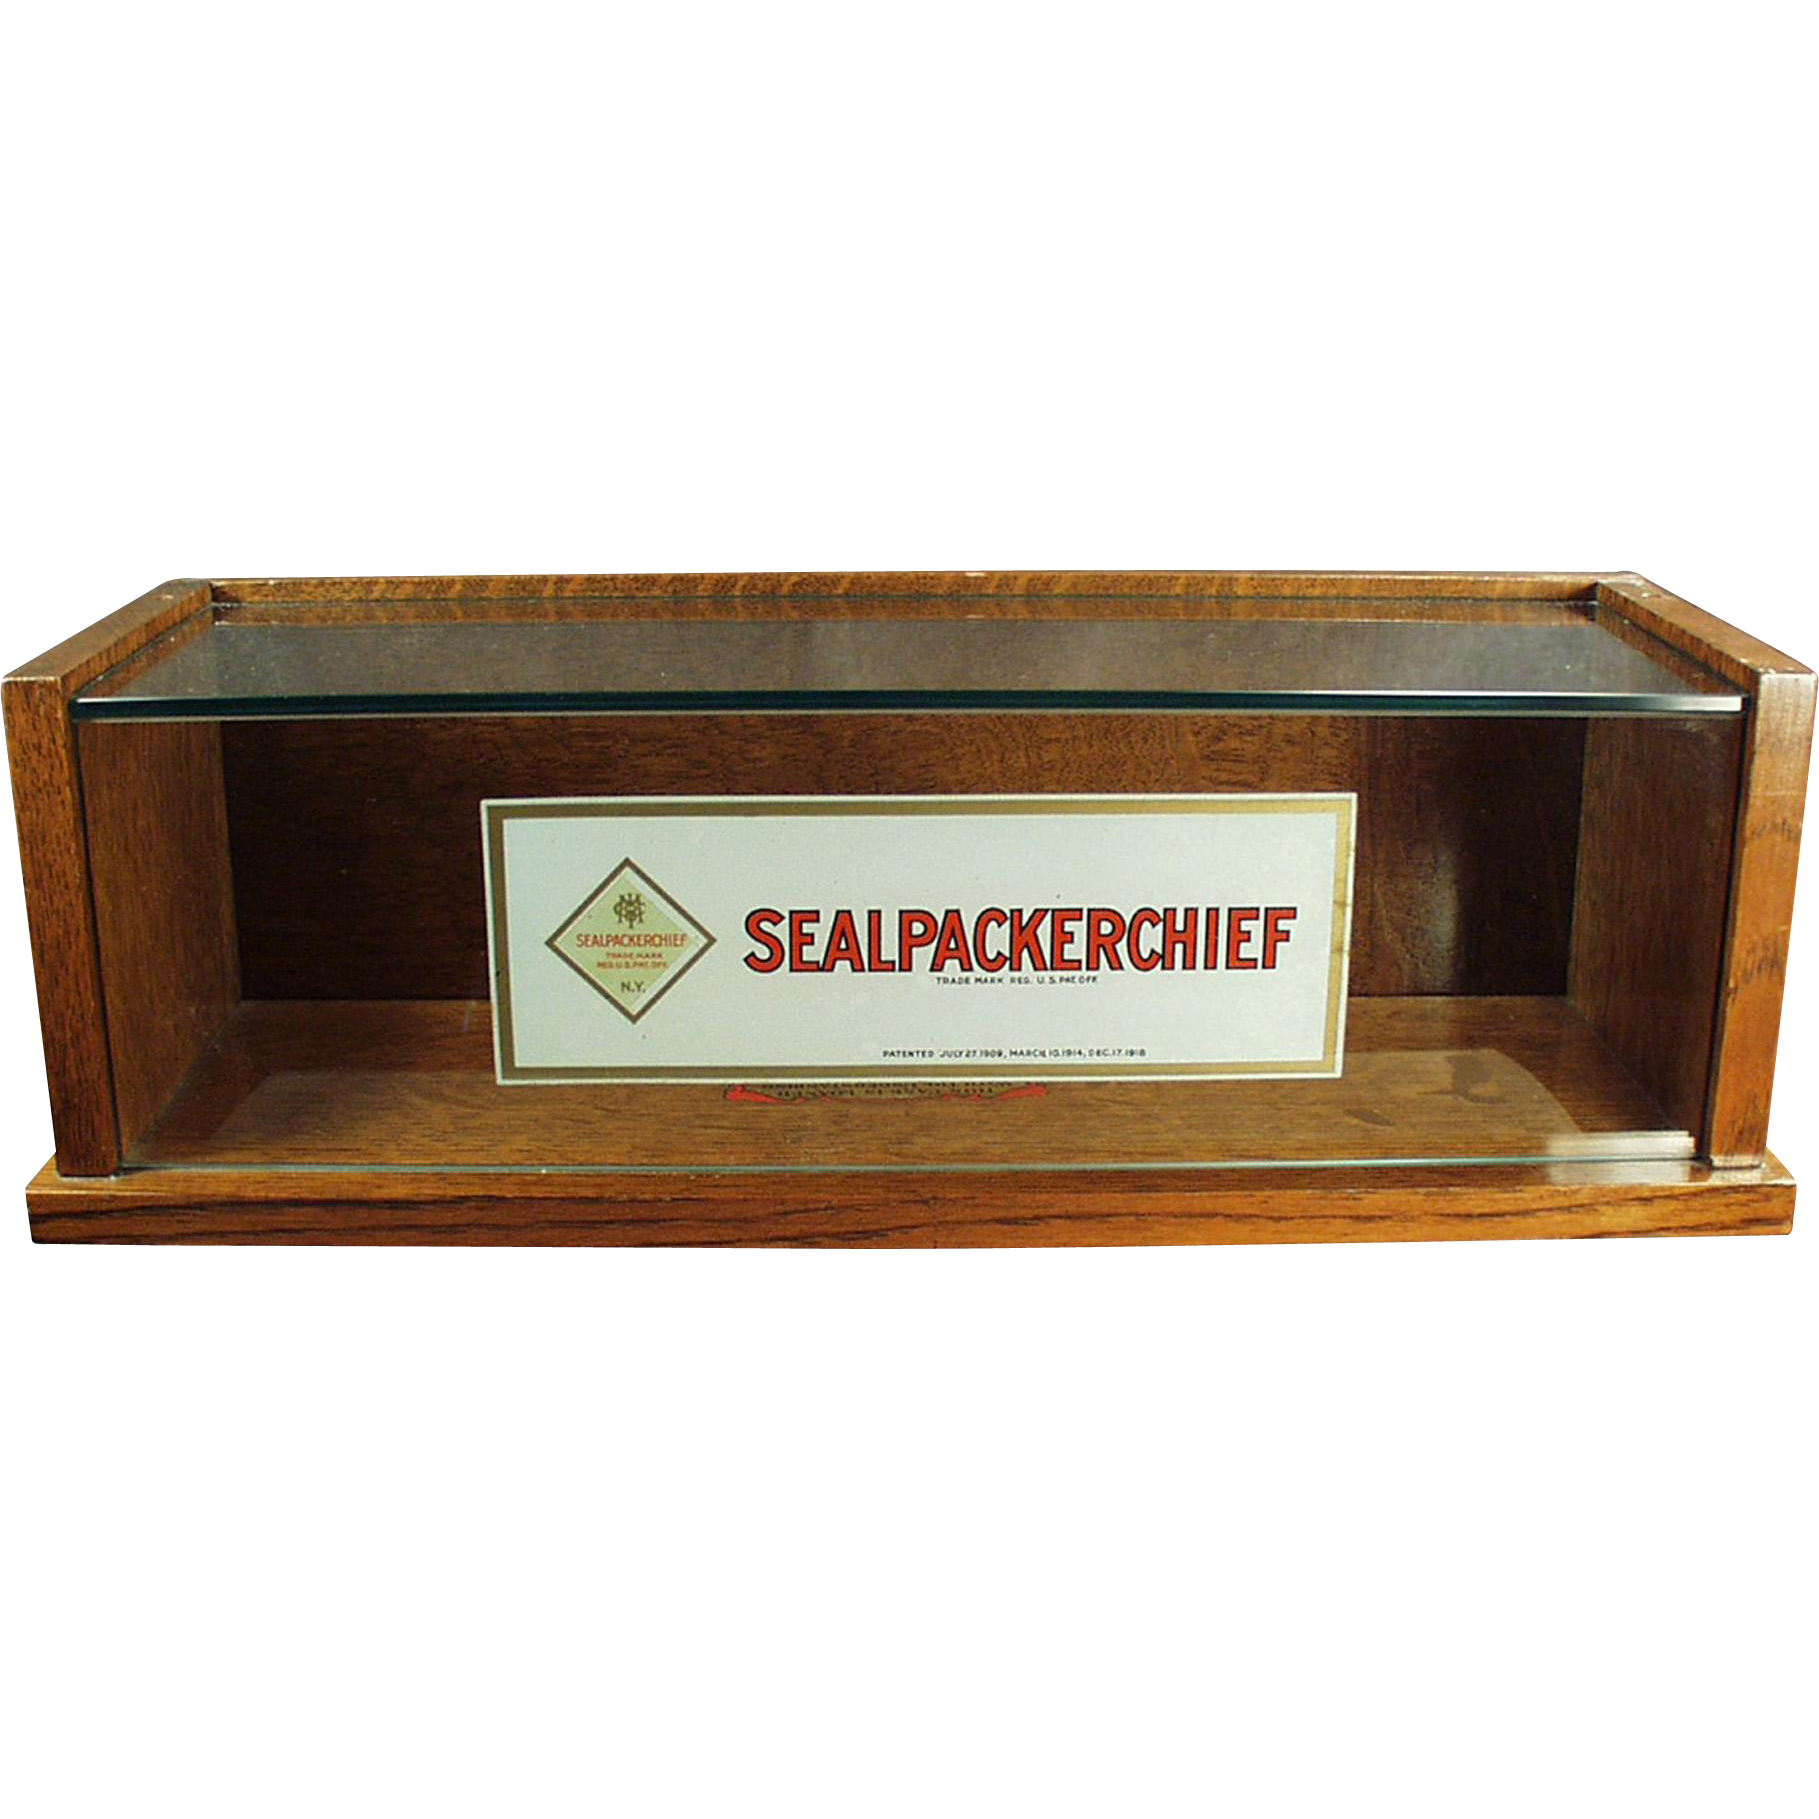 Vintage Handkerchief Display Case - Original Sealpackerchief Decals